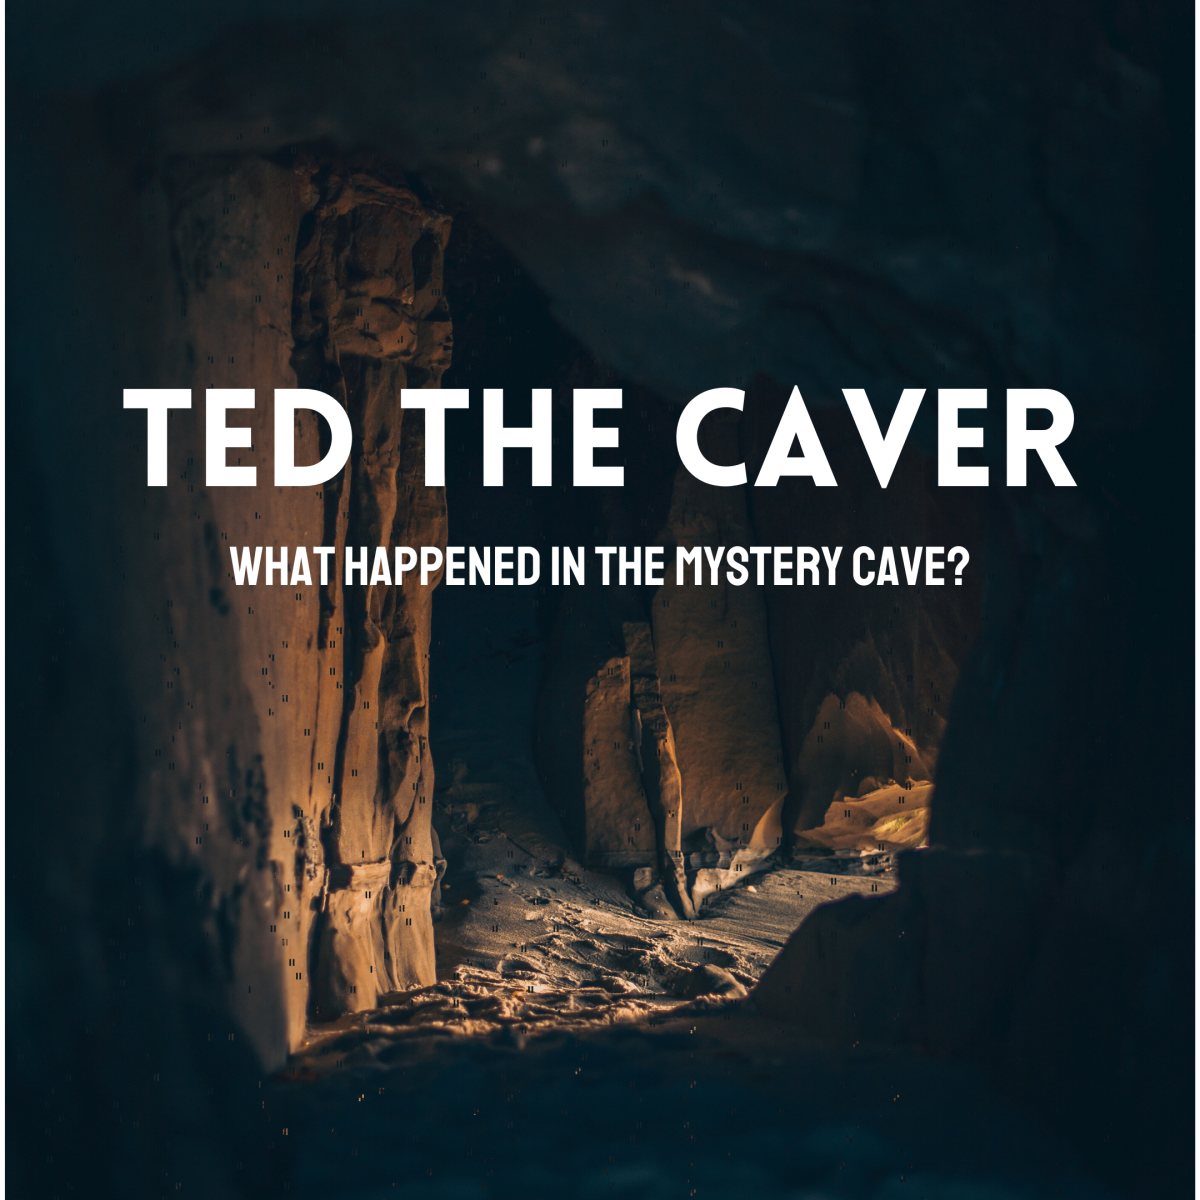 Discover the story of Ted the Caver, what he might have found in the mysterious cave, and what happened to him.